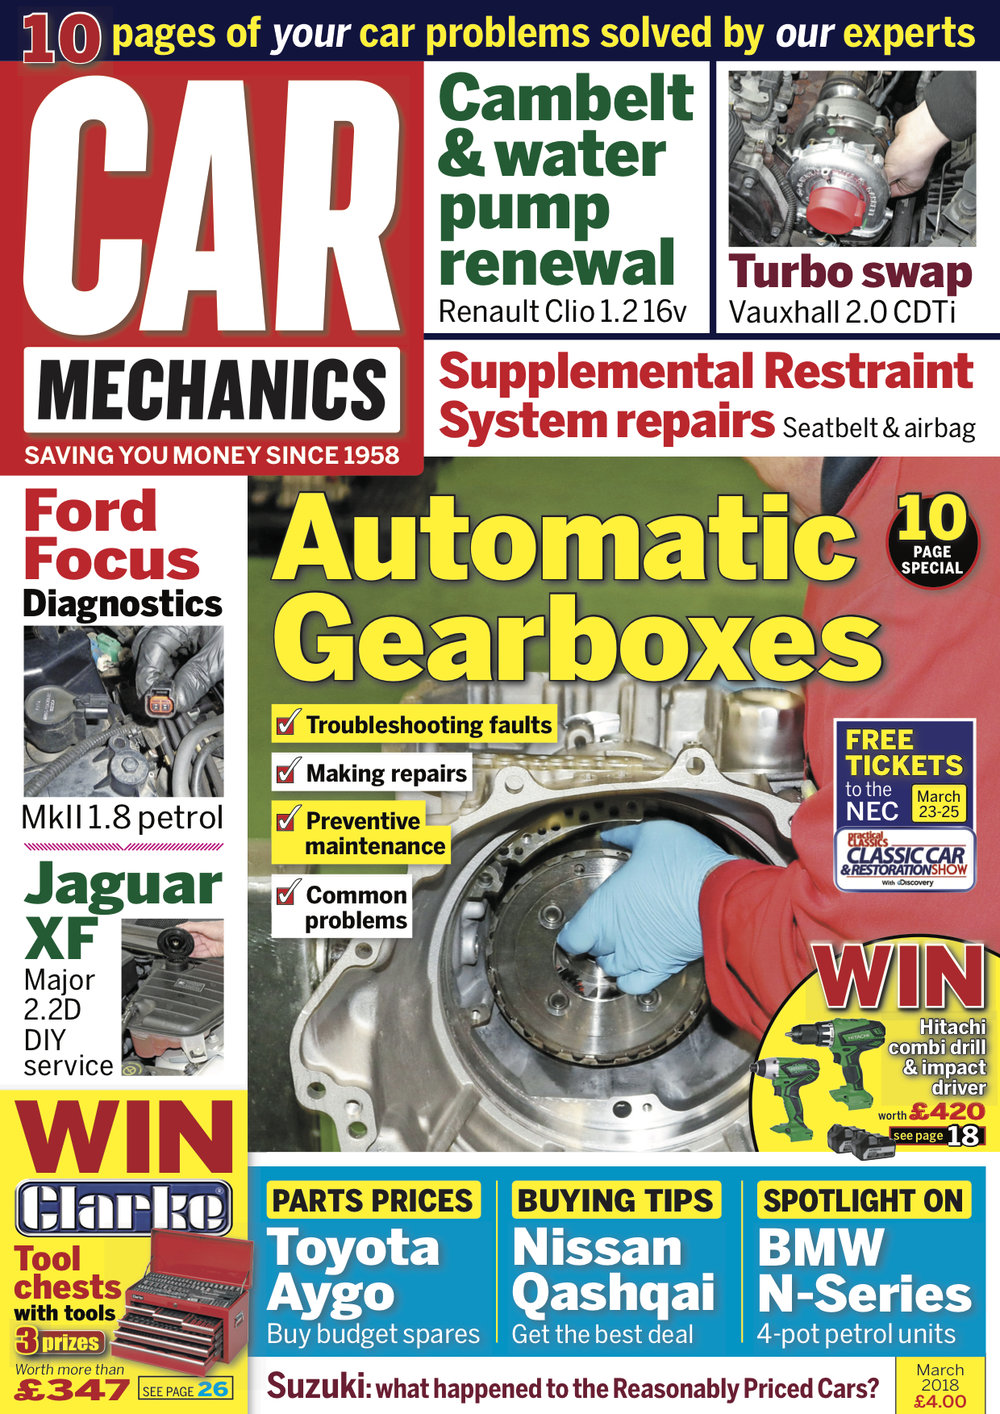 Latest Issue Car Mechanics Kia Sportage 2 0 Td Wiring Diagram Welcome To The March 2018 This Month We Take A Detailed Look At Automatic Gearboxes Including Tips On Troubleshooting Faults Preventive Maintenance